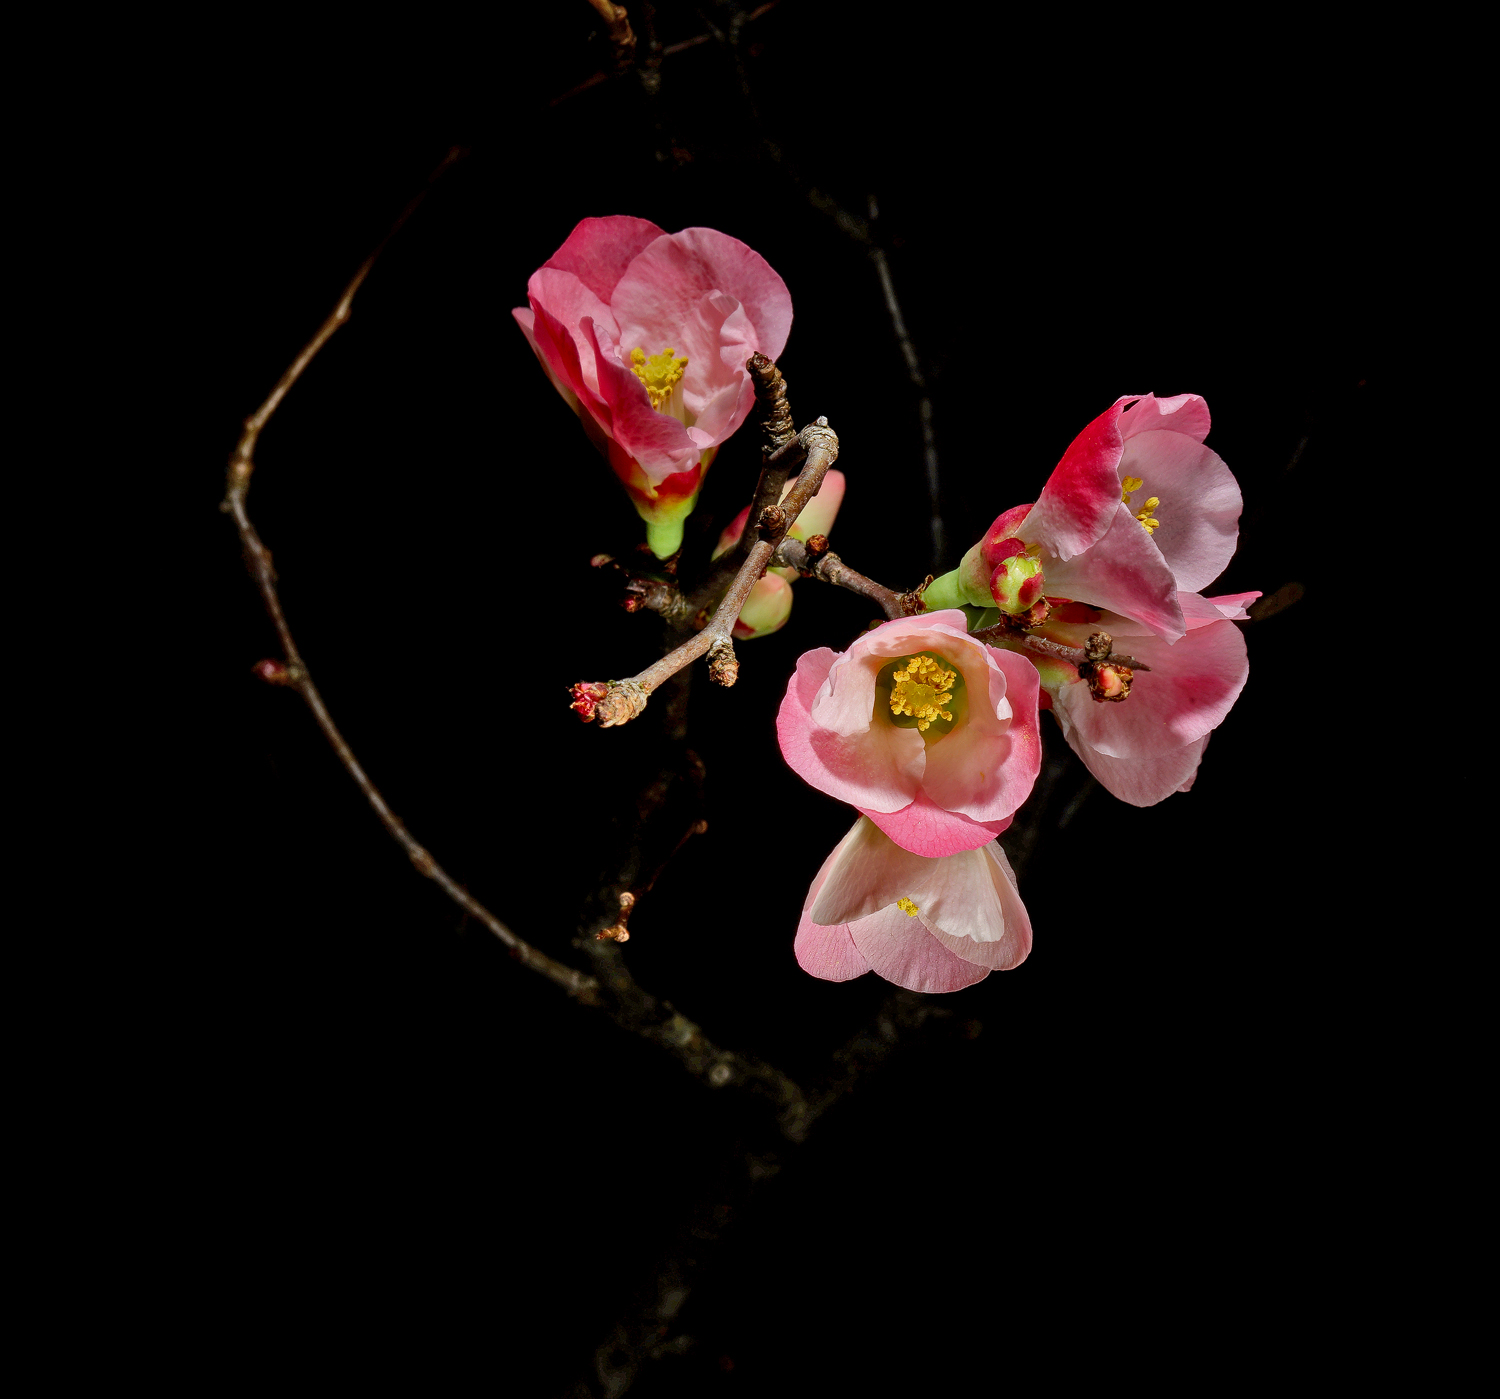 wild quince in dec dsc aw author sava gregory and verena